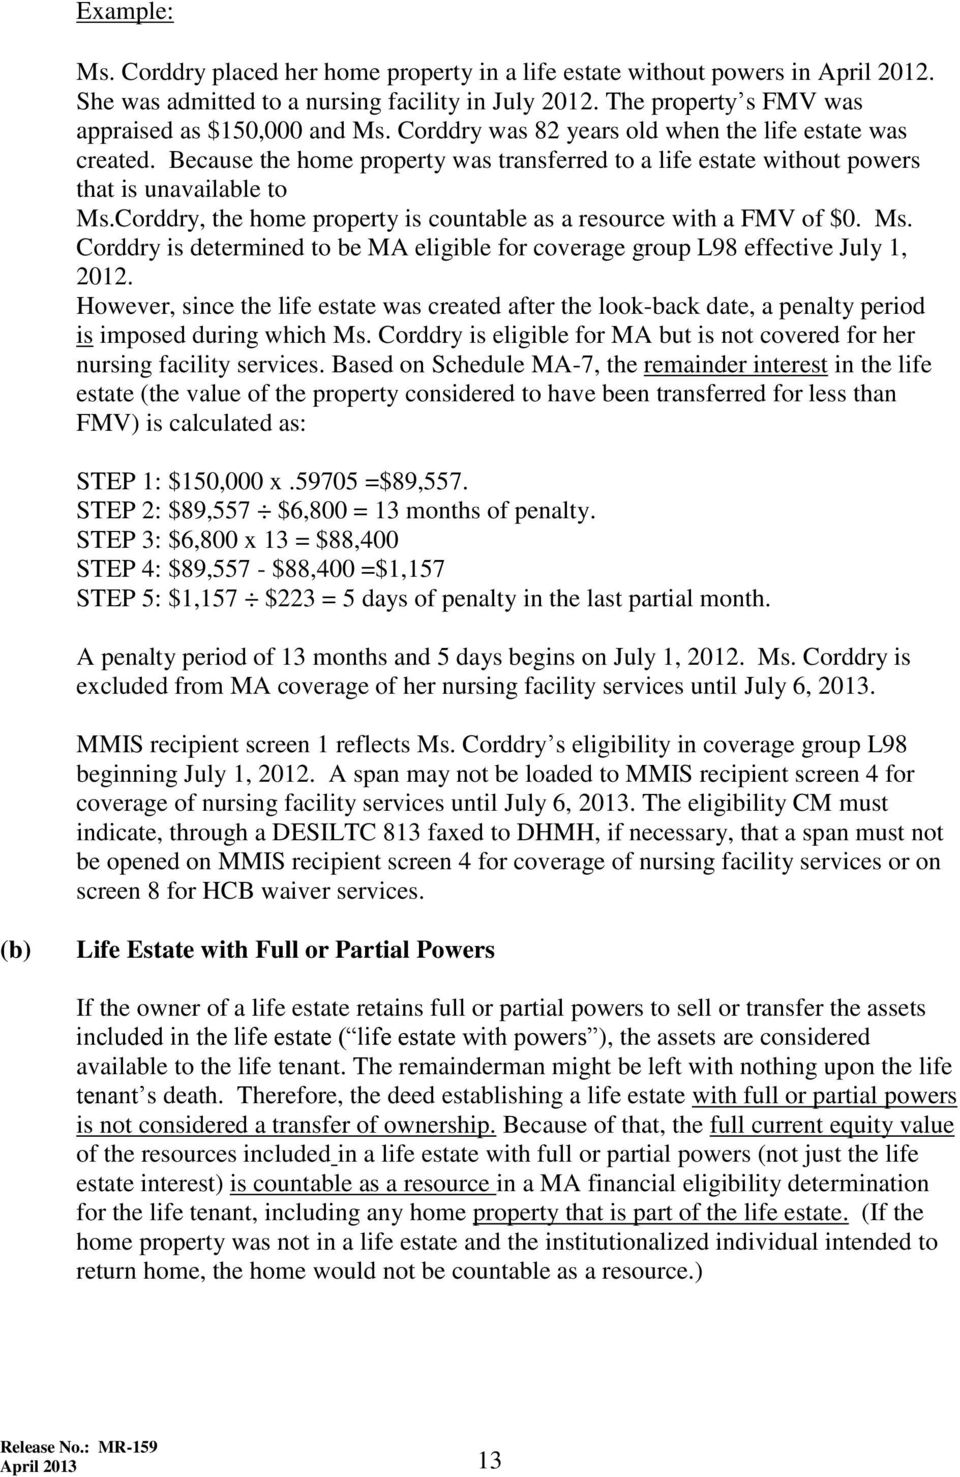 Corddry, the home property is countable as a resource with a FMV of $0. Ms. Corddry is determined to be MA eligible for coverage group L98 effective July 1, 2012.